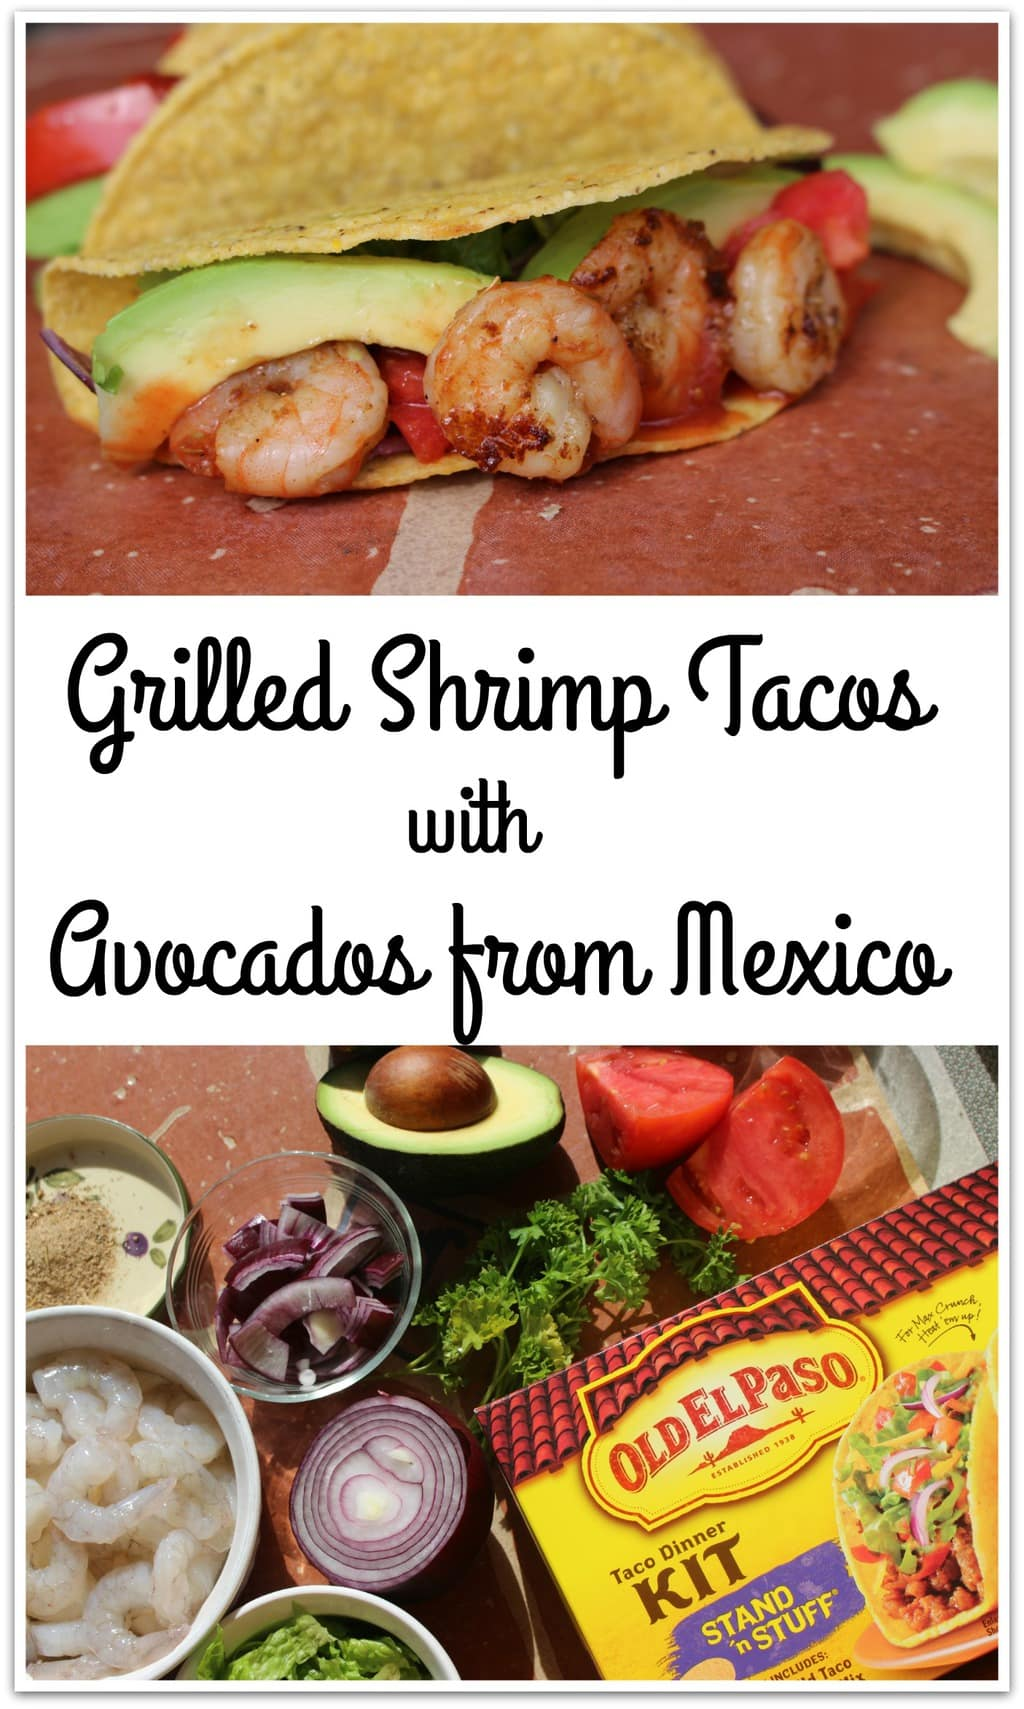 Shrimp tacos are one of my favorite foods. My family never tires of Mexican food, and this is such an easy recipe. When you are busy like we are, you need to be able to pull dinner together quickly. This recipe is perfect for a weeknight meal.